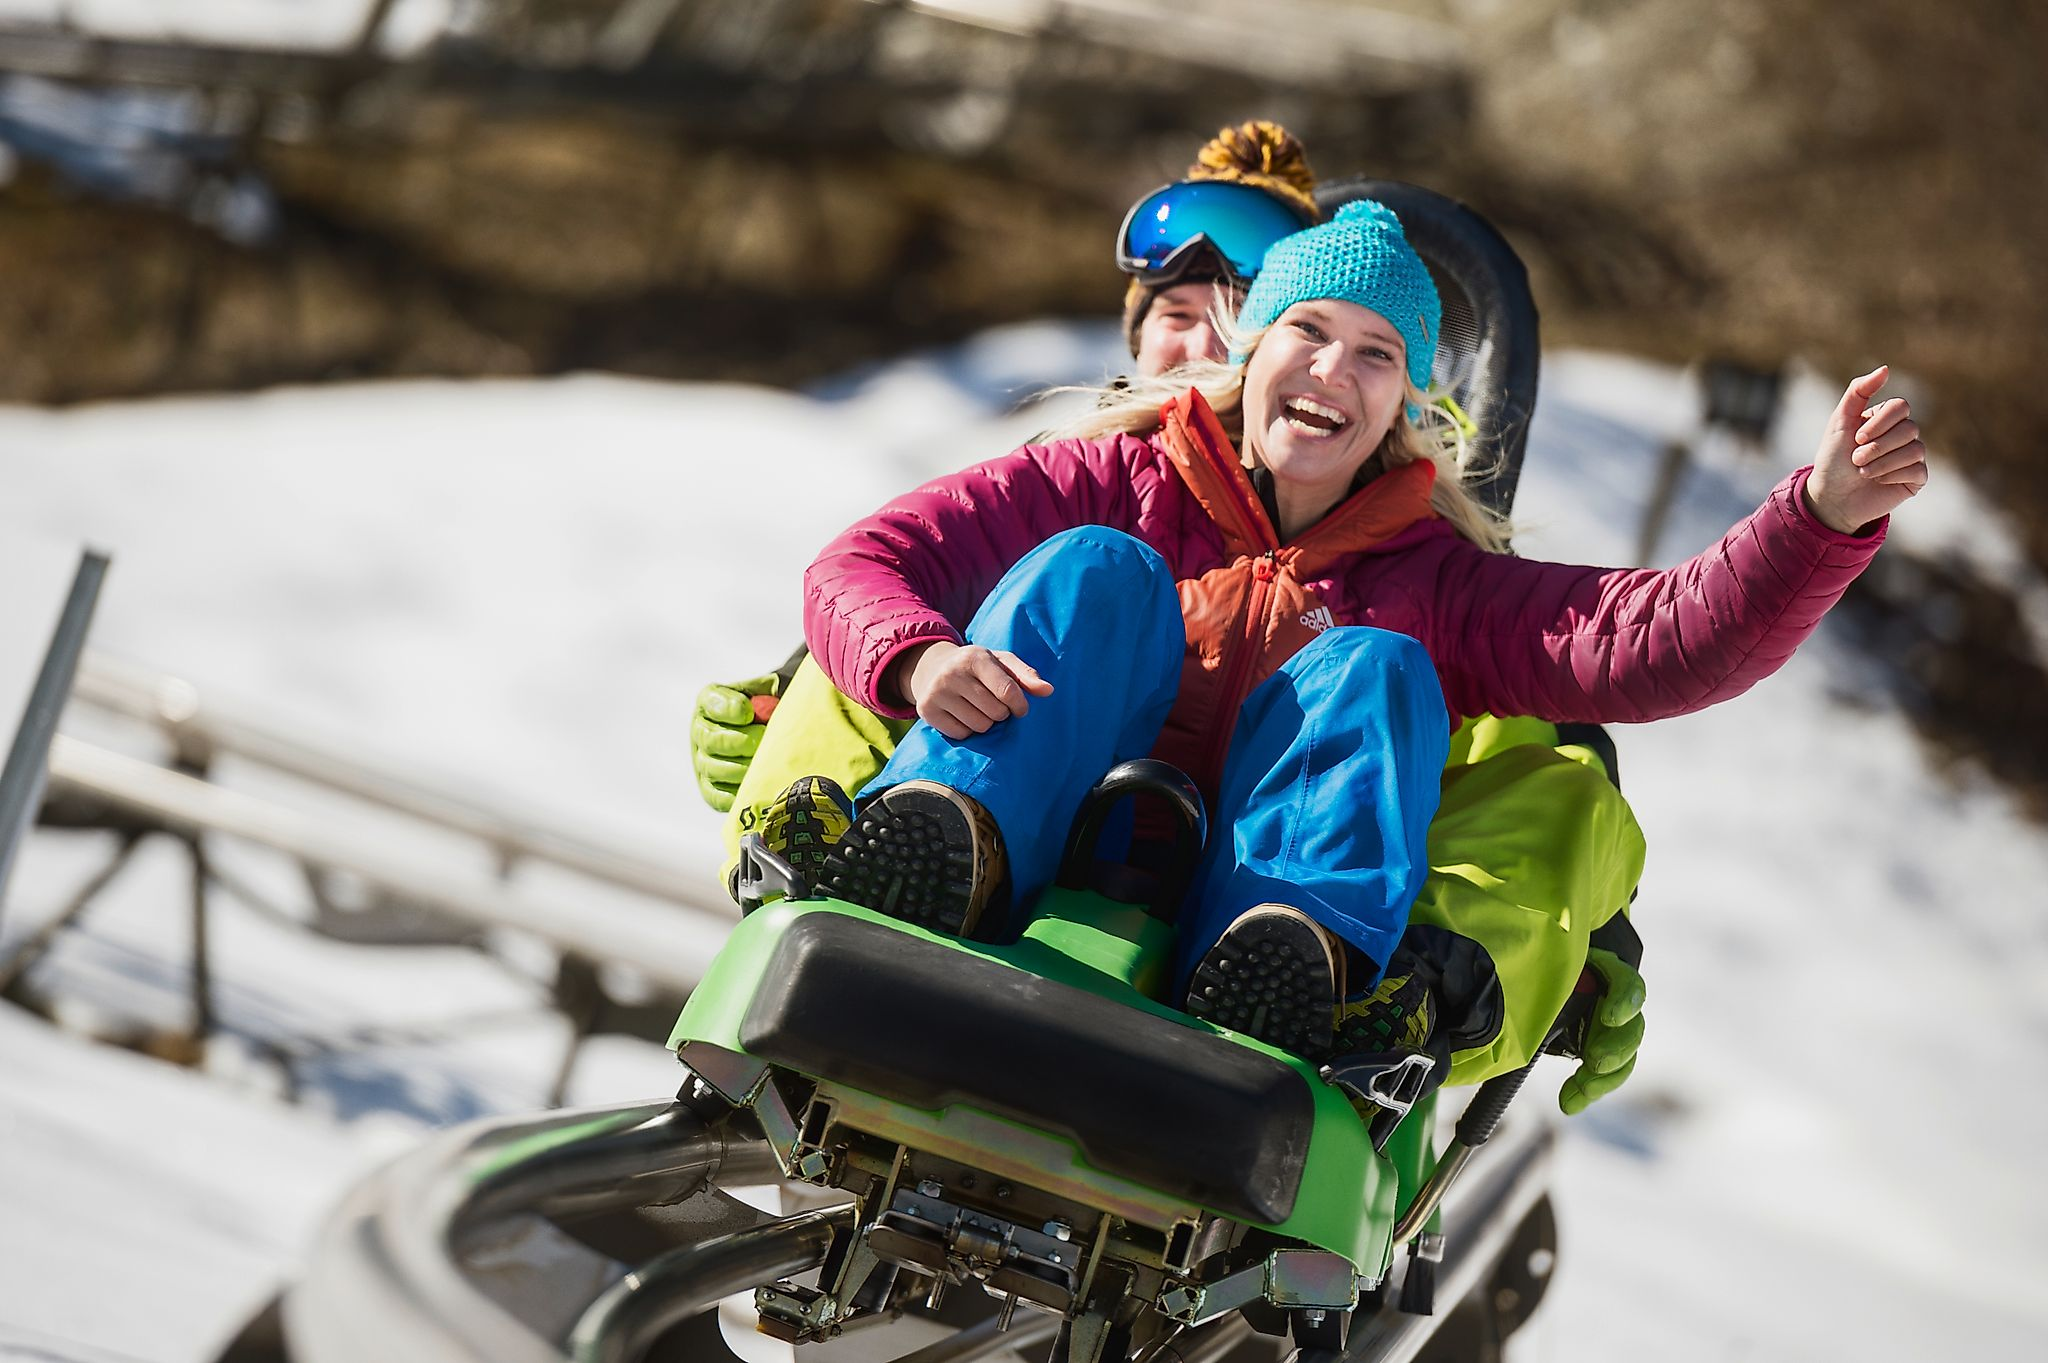 <p>The Lucky Flitzer promises fun and adventure for everyone. The cool alpine roller coaster in Flachau is also open in the evening under floodlights</p>